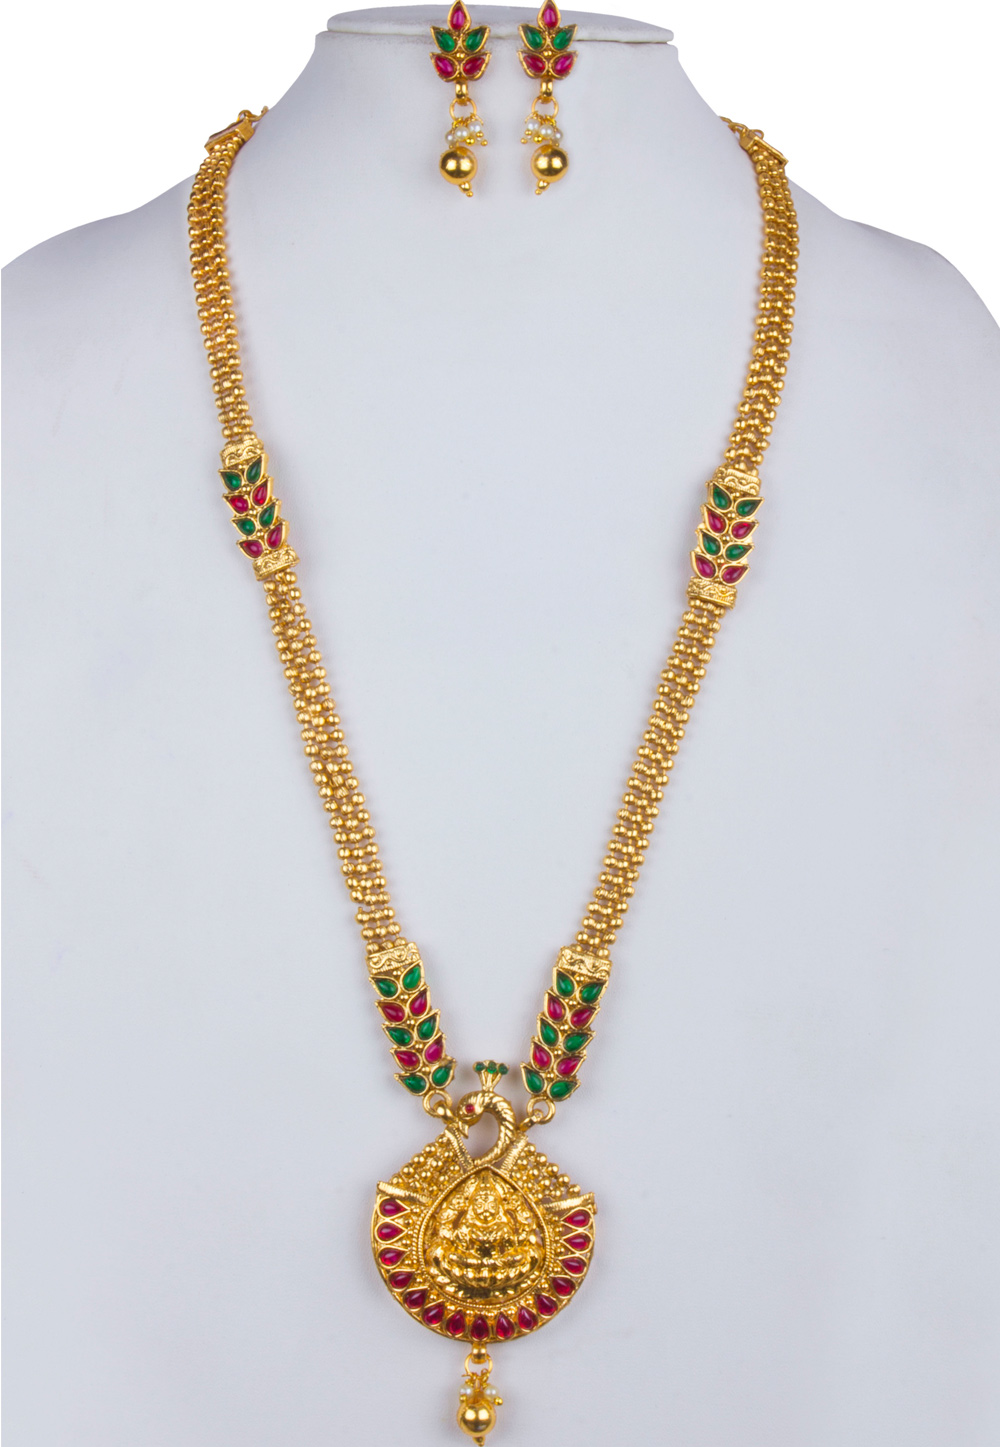 Pink Alloy Necklace With Earrings 157137